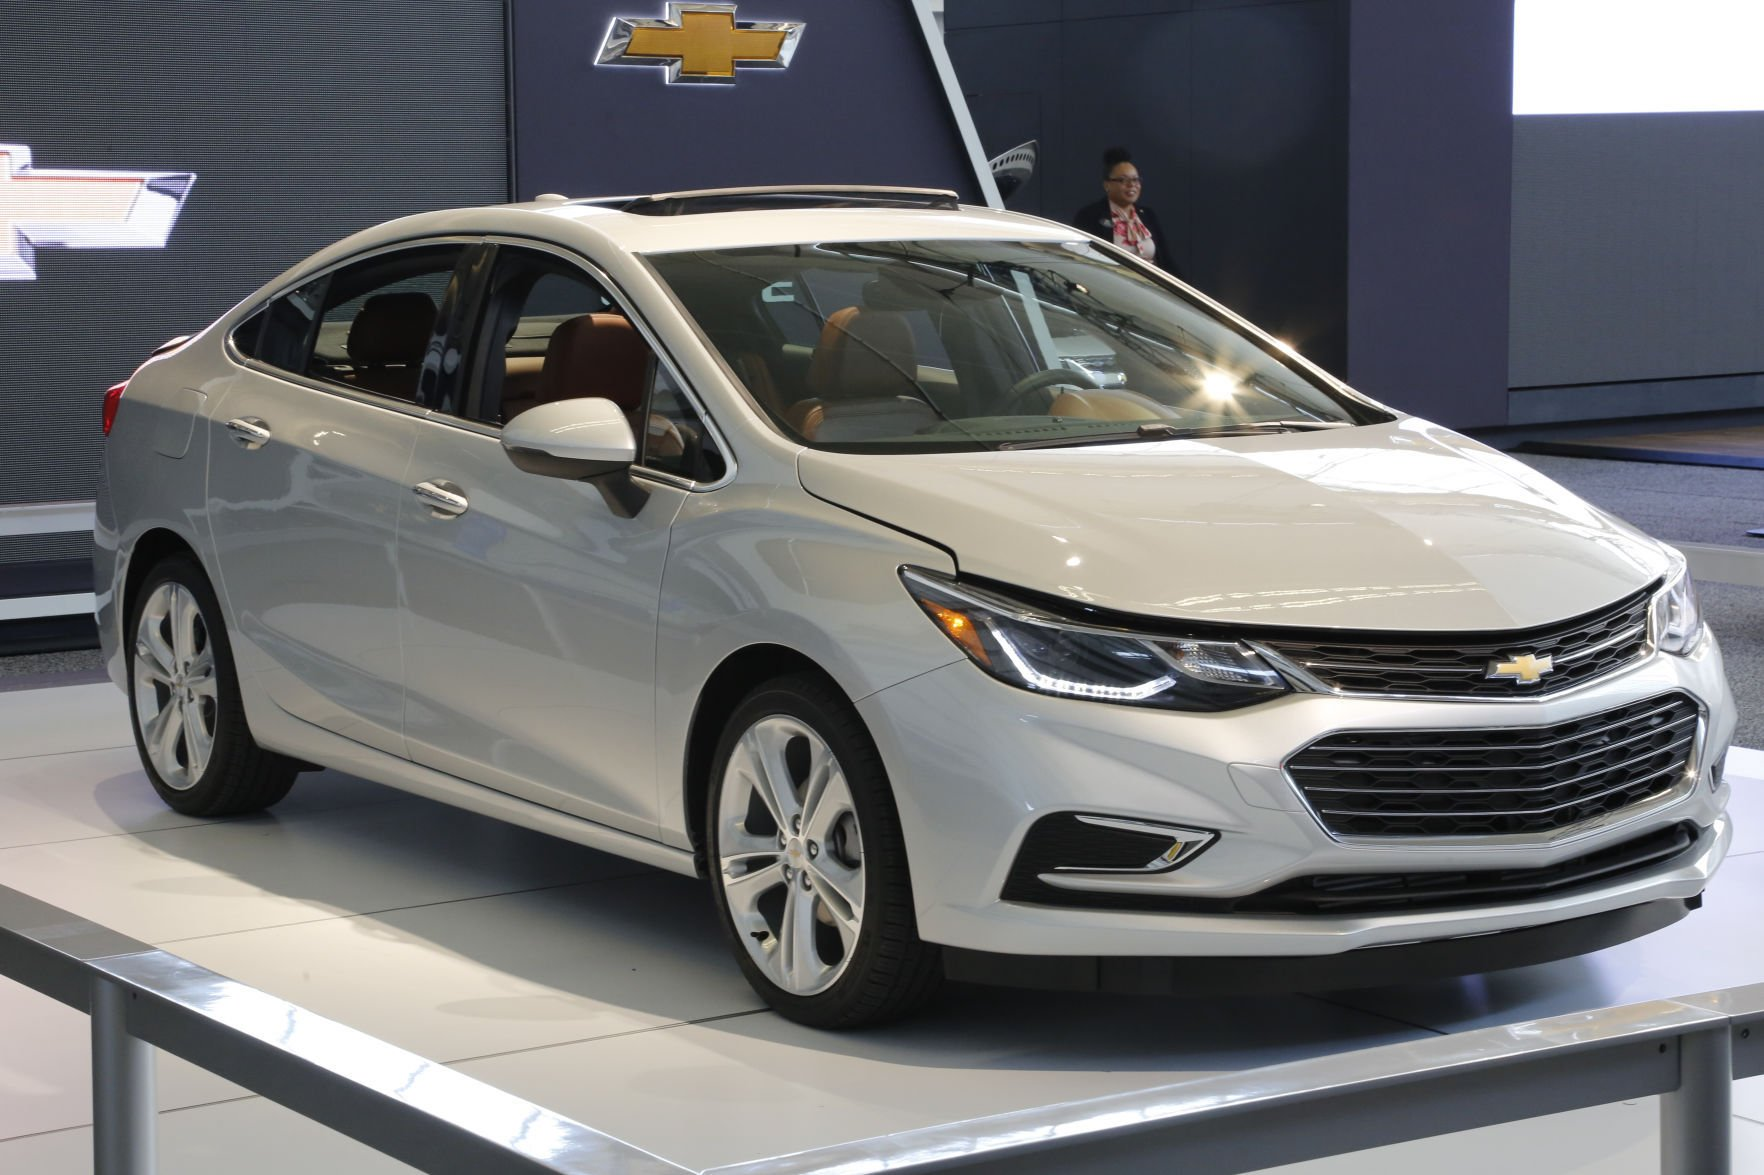 2016 Chevy Cruze Fresh, Smartphone Friendly And Fast